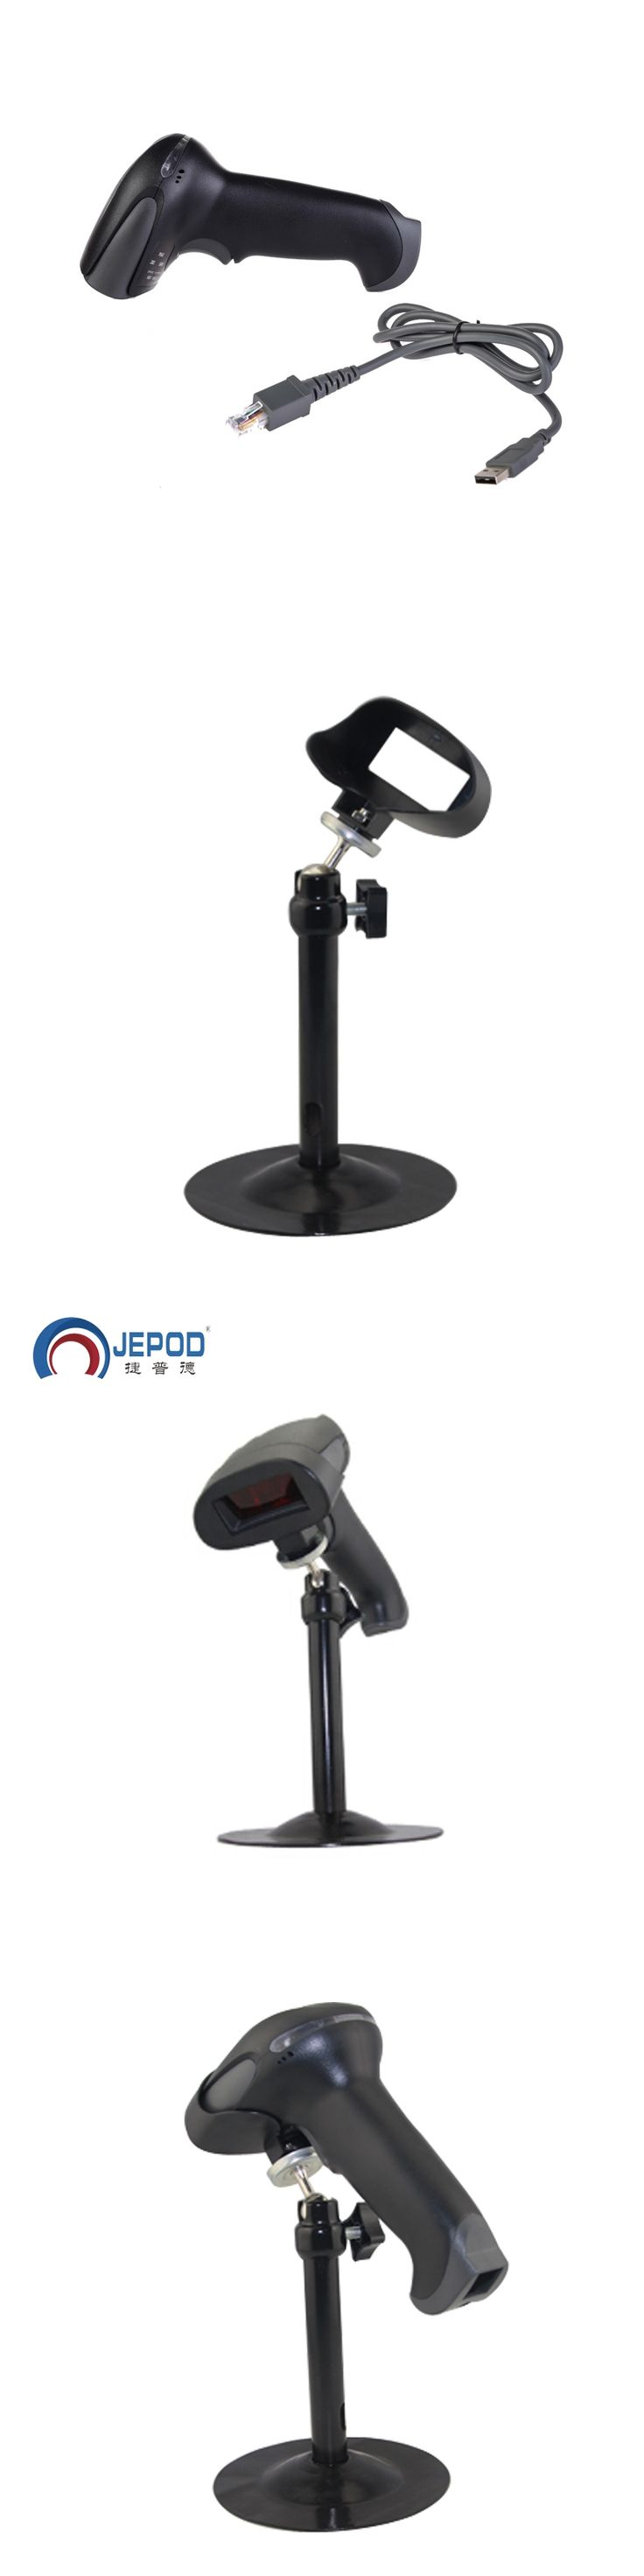 Freeshipping! JP-A1 usb barcode scanner stand barcode scanner cradle barcode reader bracket with JP-A1 wired barcode scanner